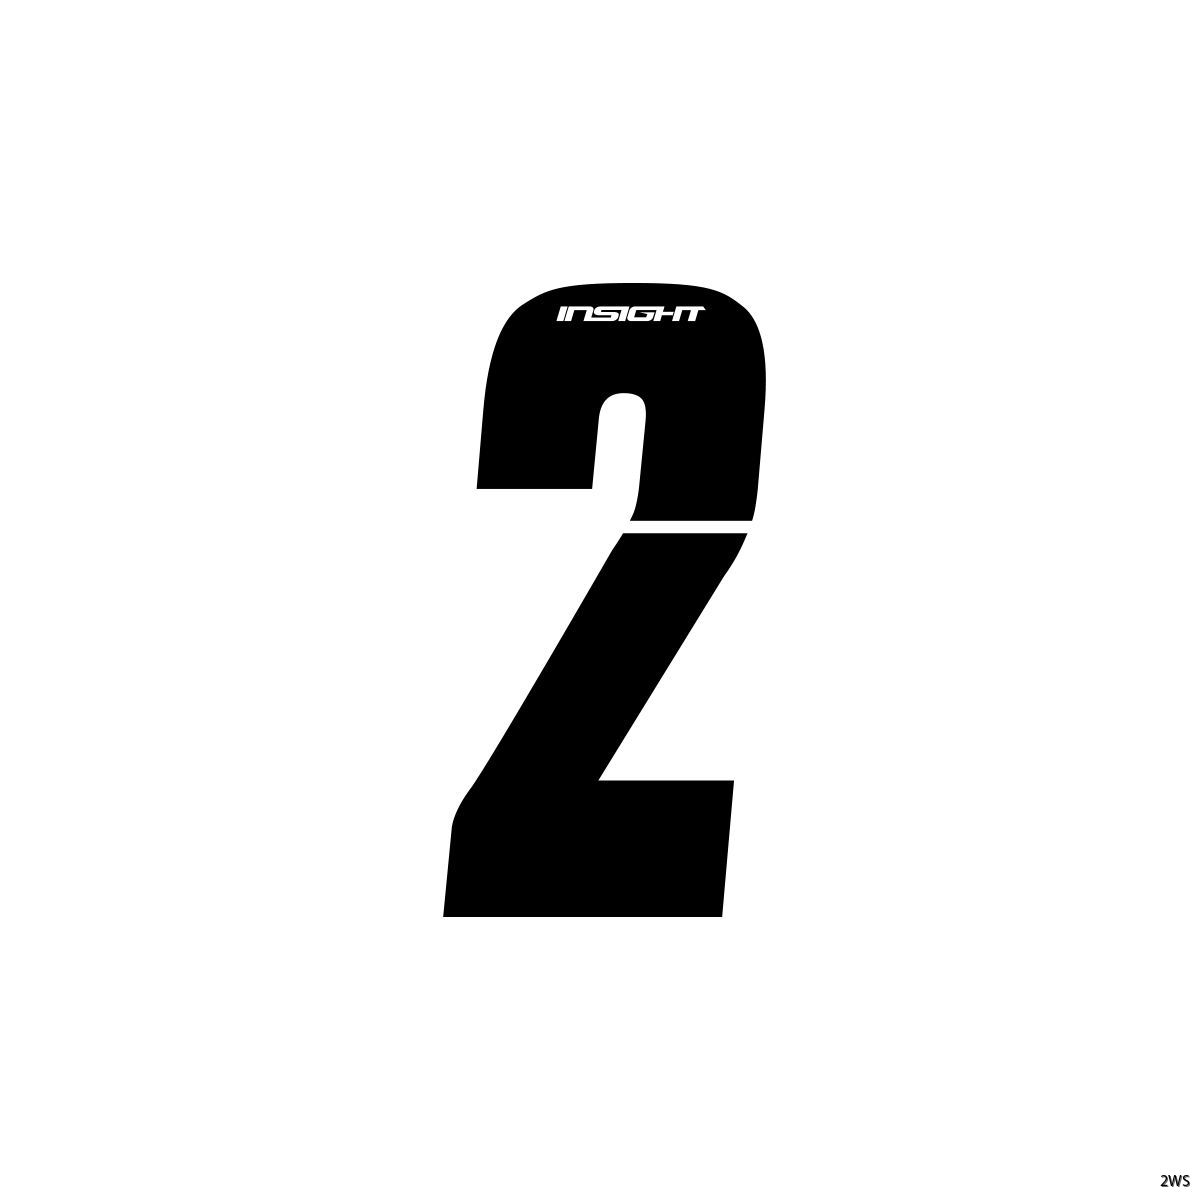 side-plate-numbers-insight-black-7-5cm_2